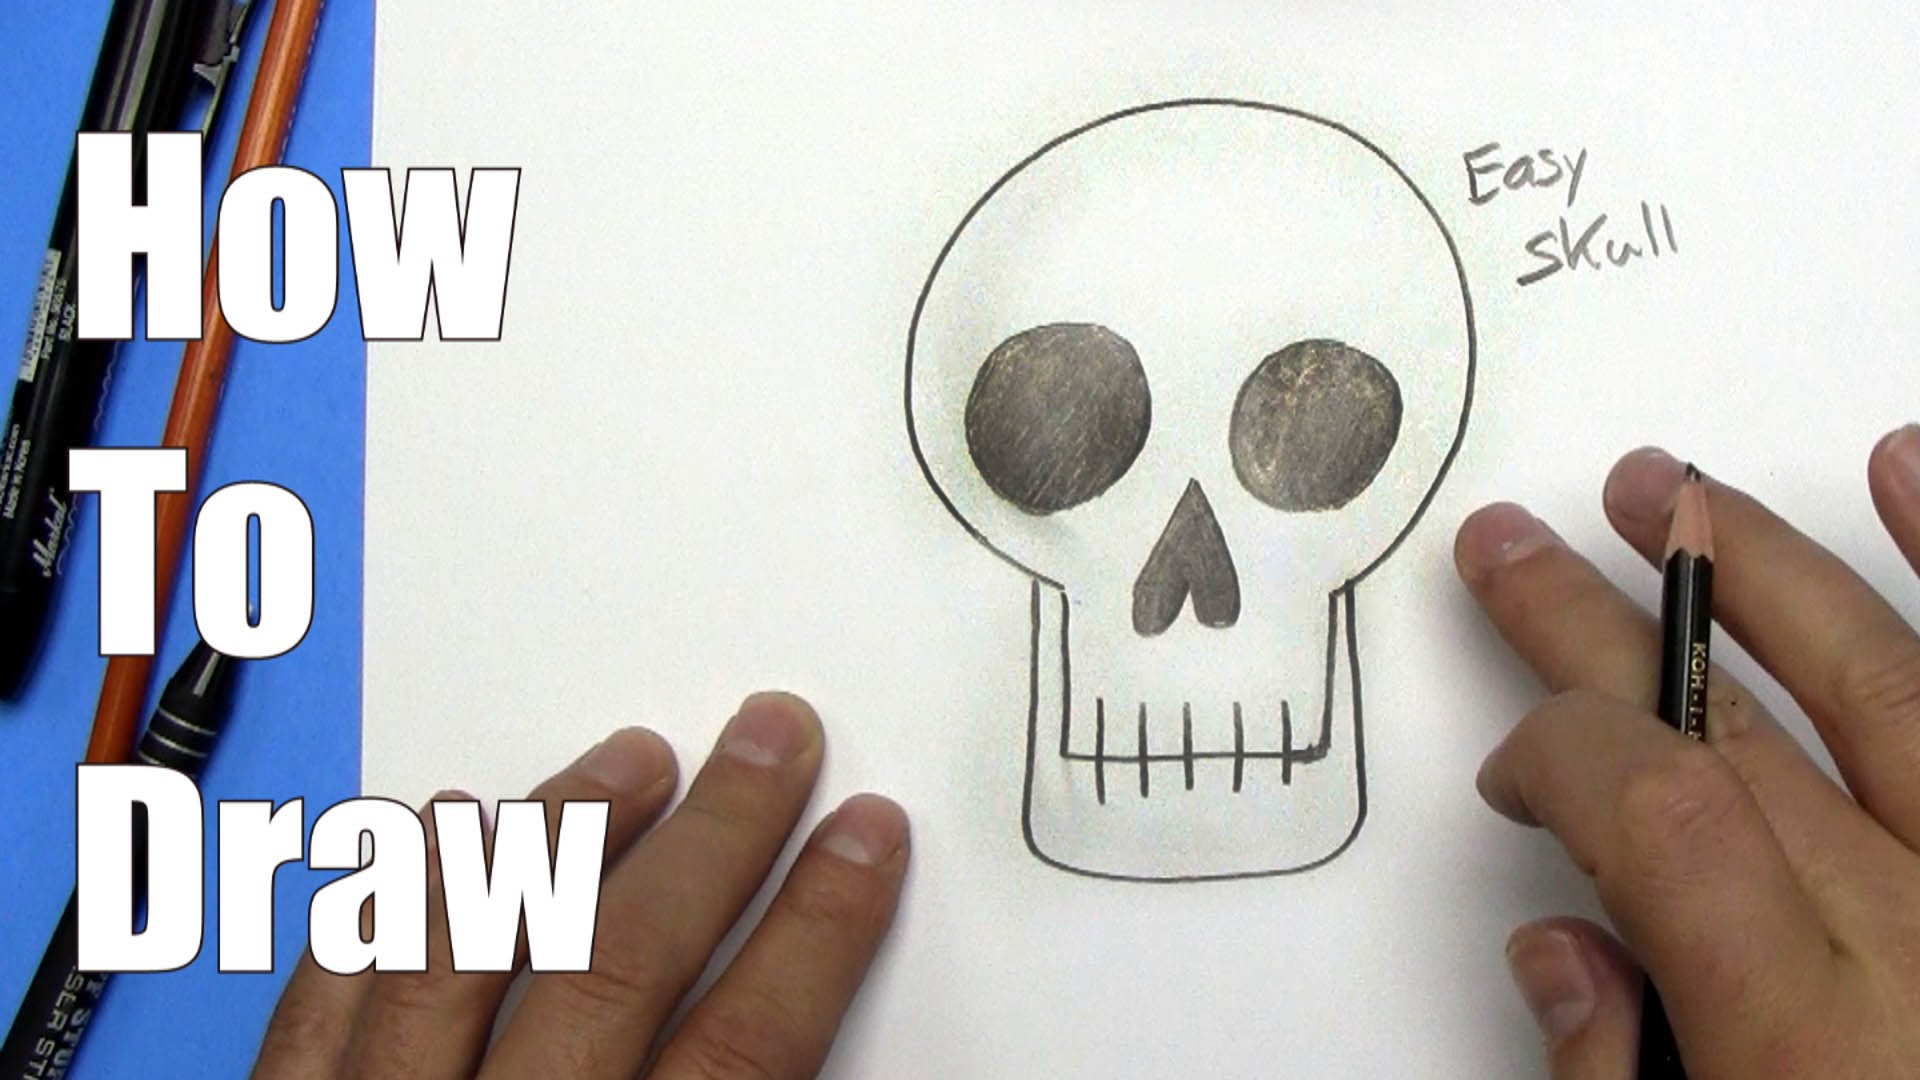 1920x1080 How To Draw An Easy Skull